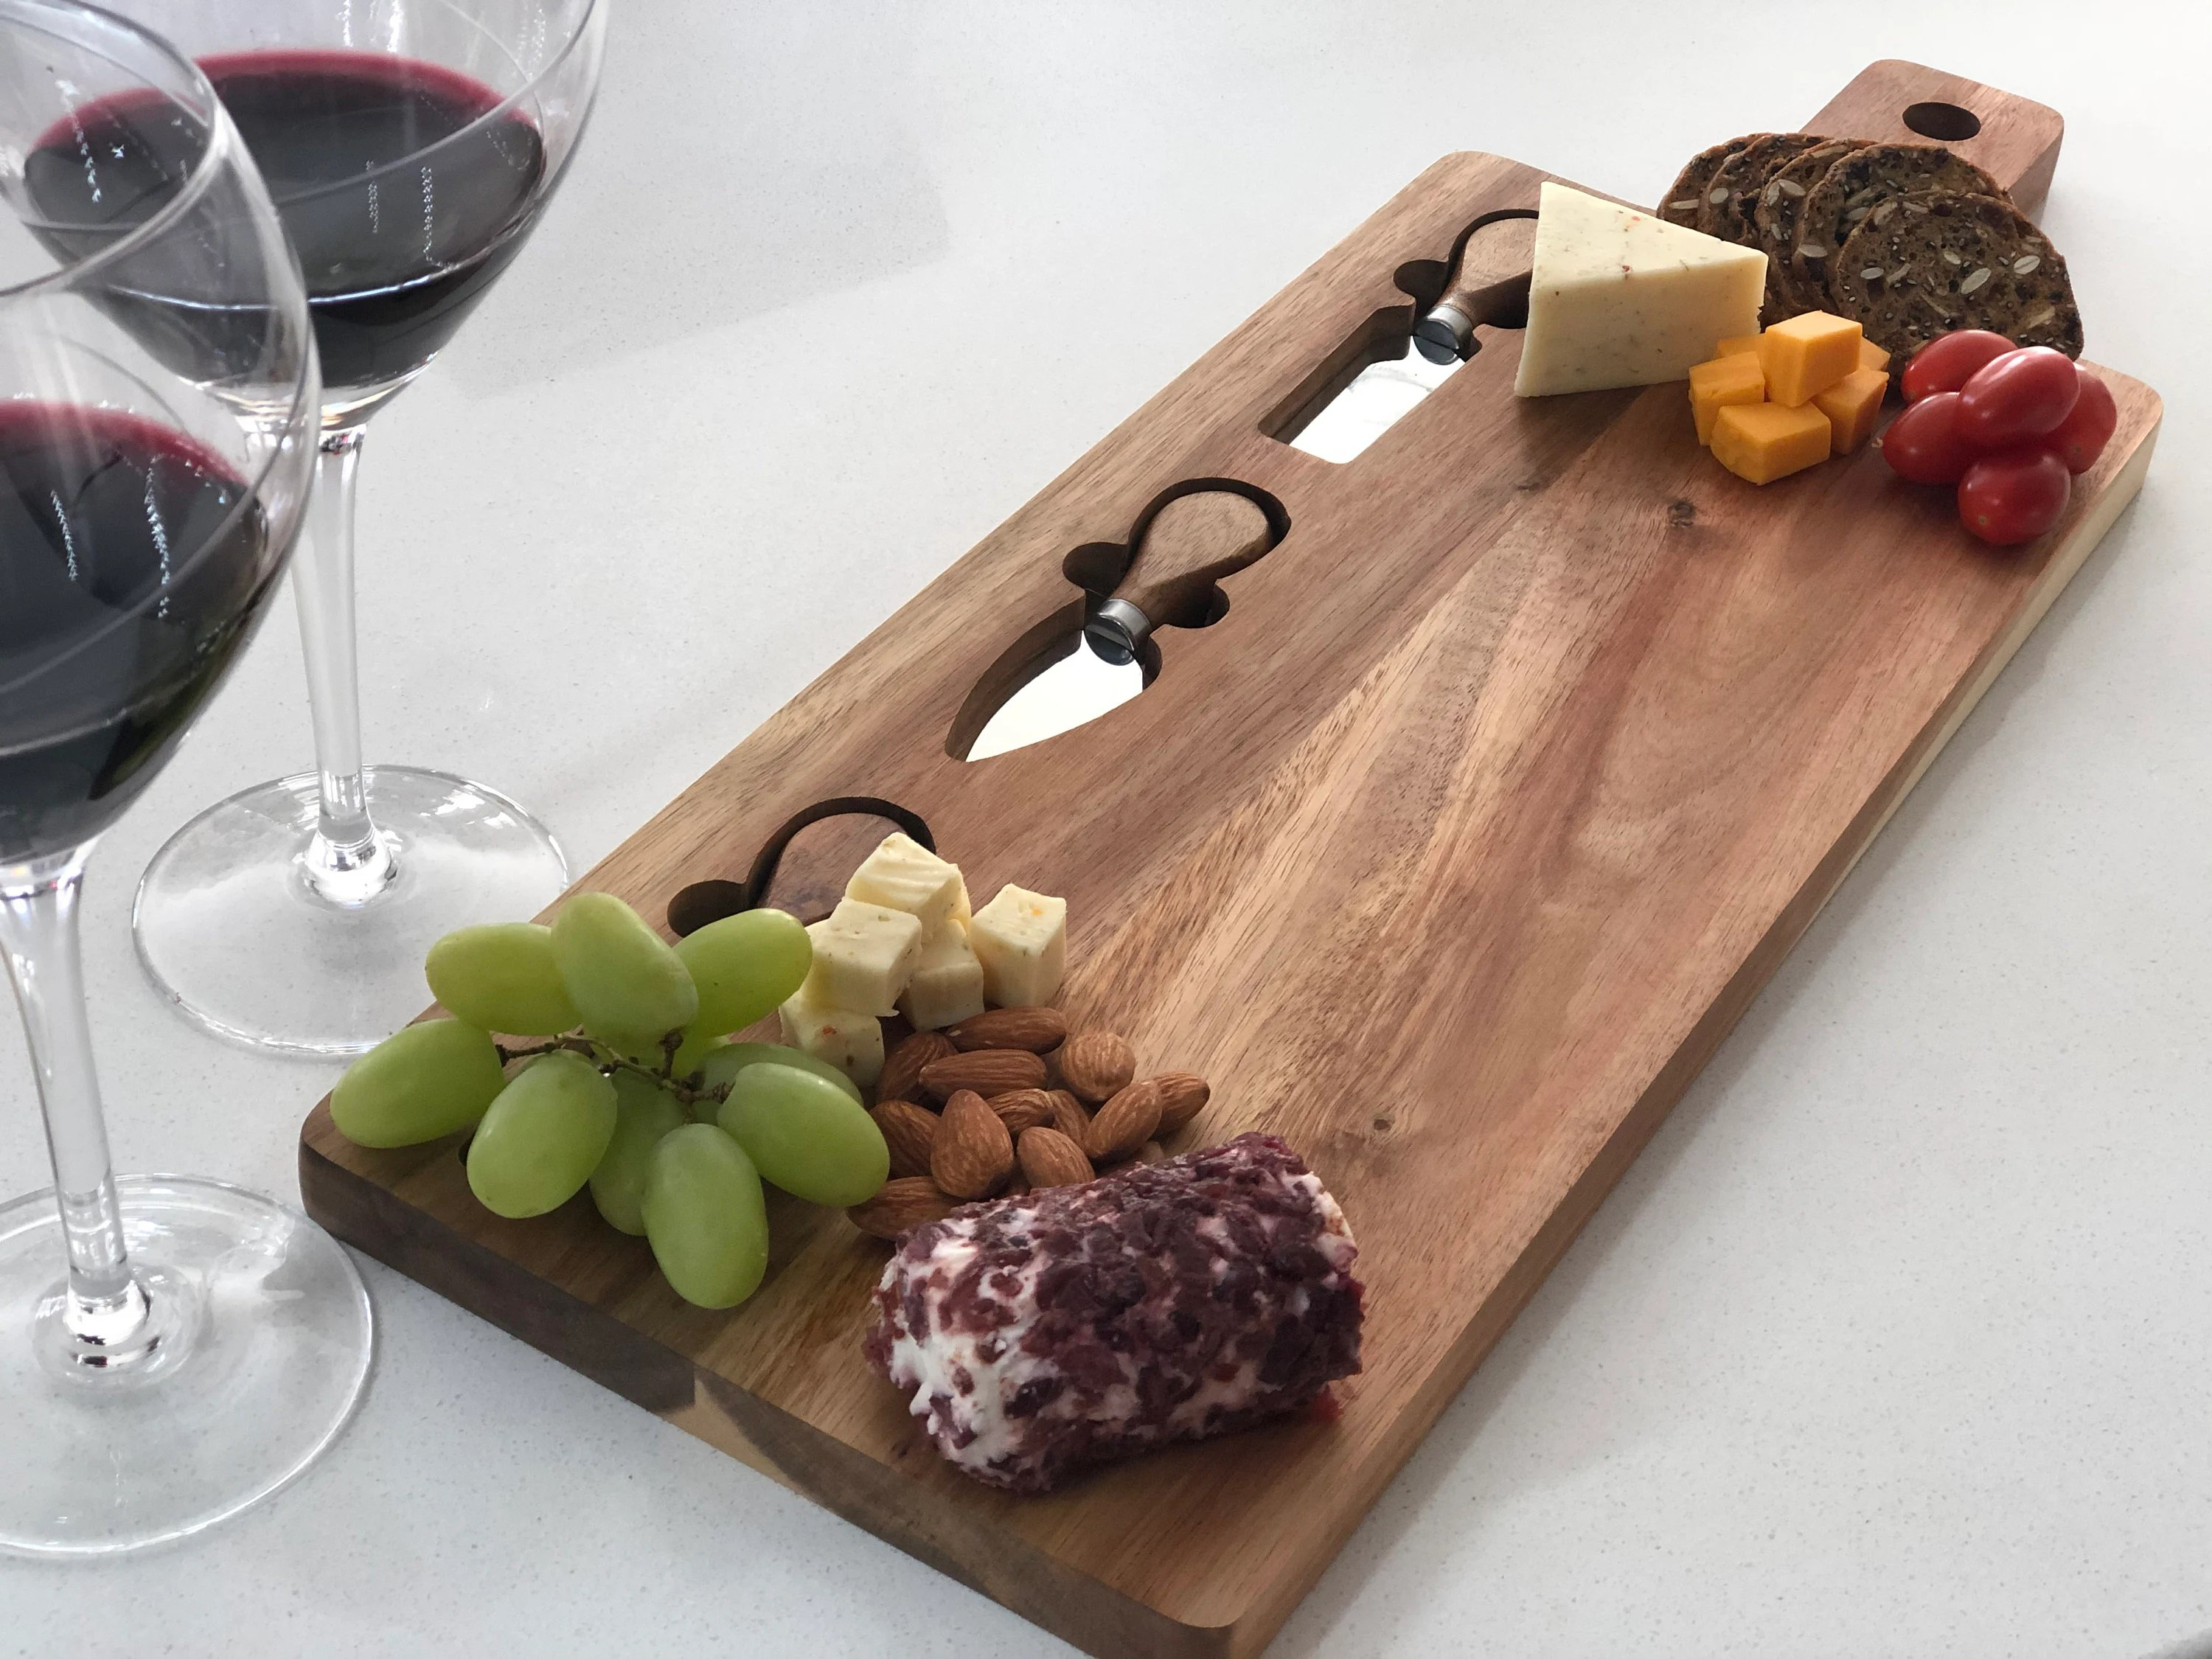 Personalized Cheese Board Cheese board with tools image 4